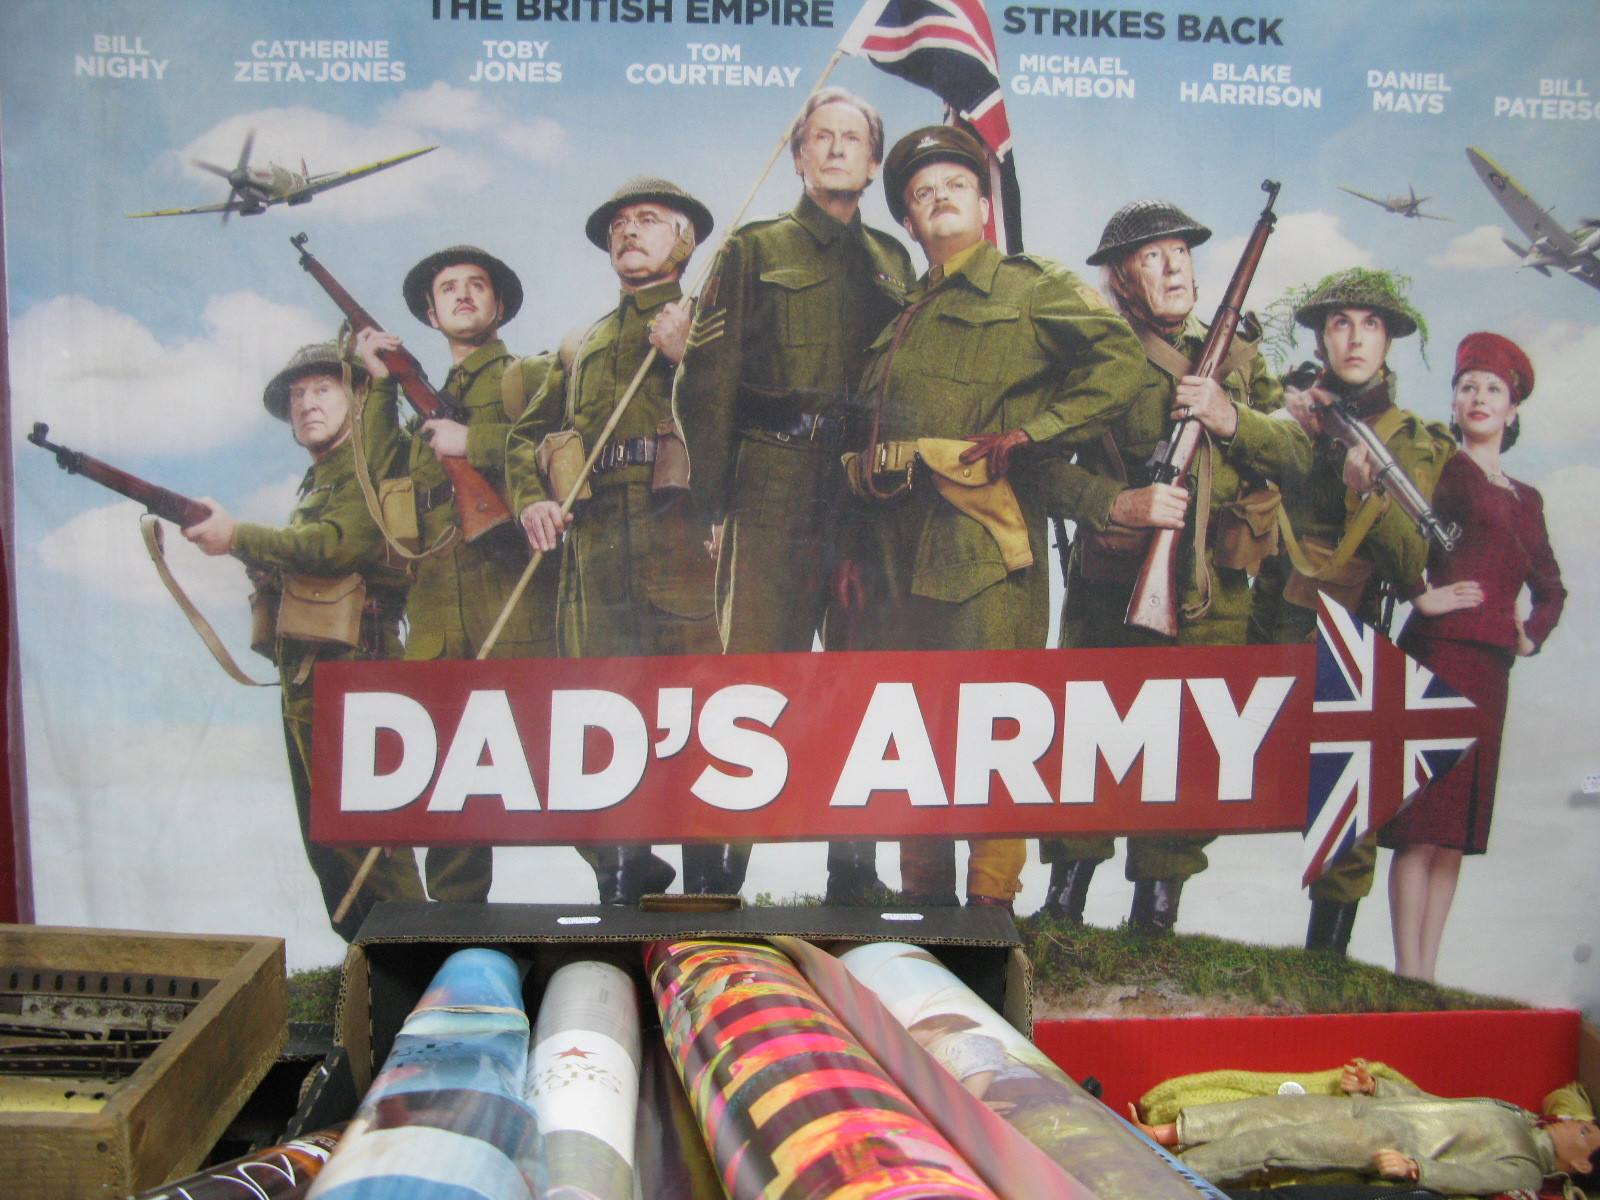 Lot 1005 - A Collection of Modern Film Posters, (Dad's Army, Wuthering Heights, Berberian Sound Studio etc),